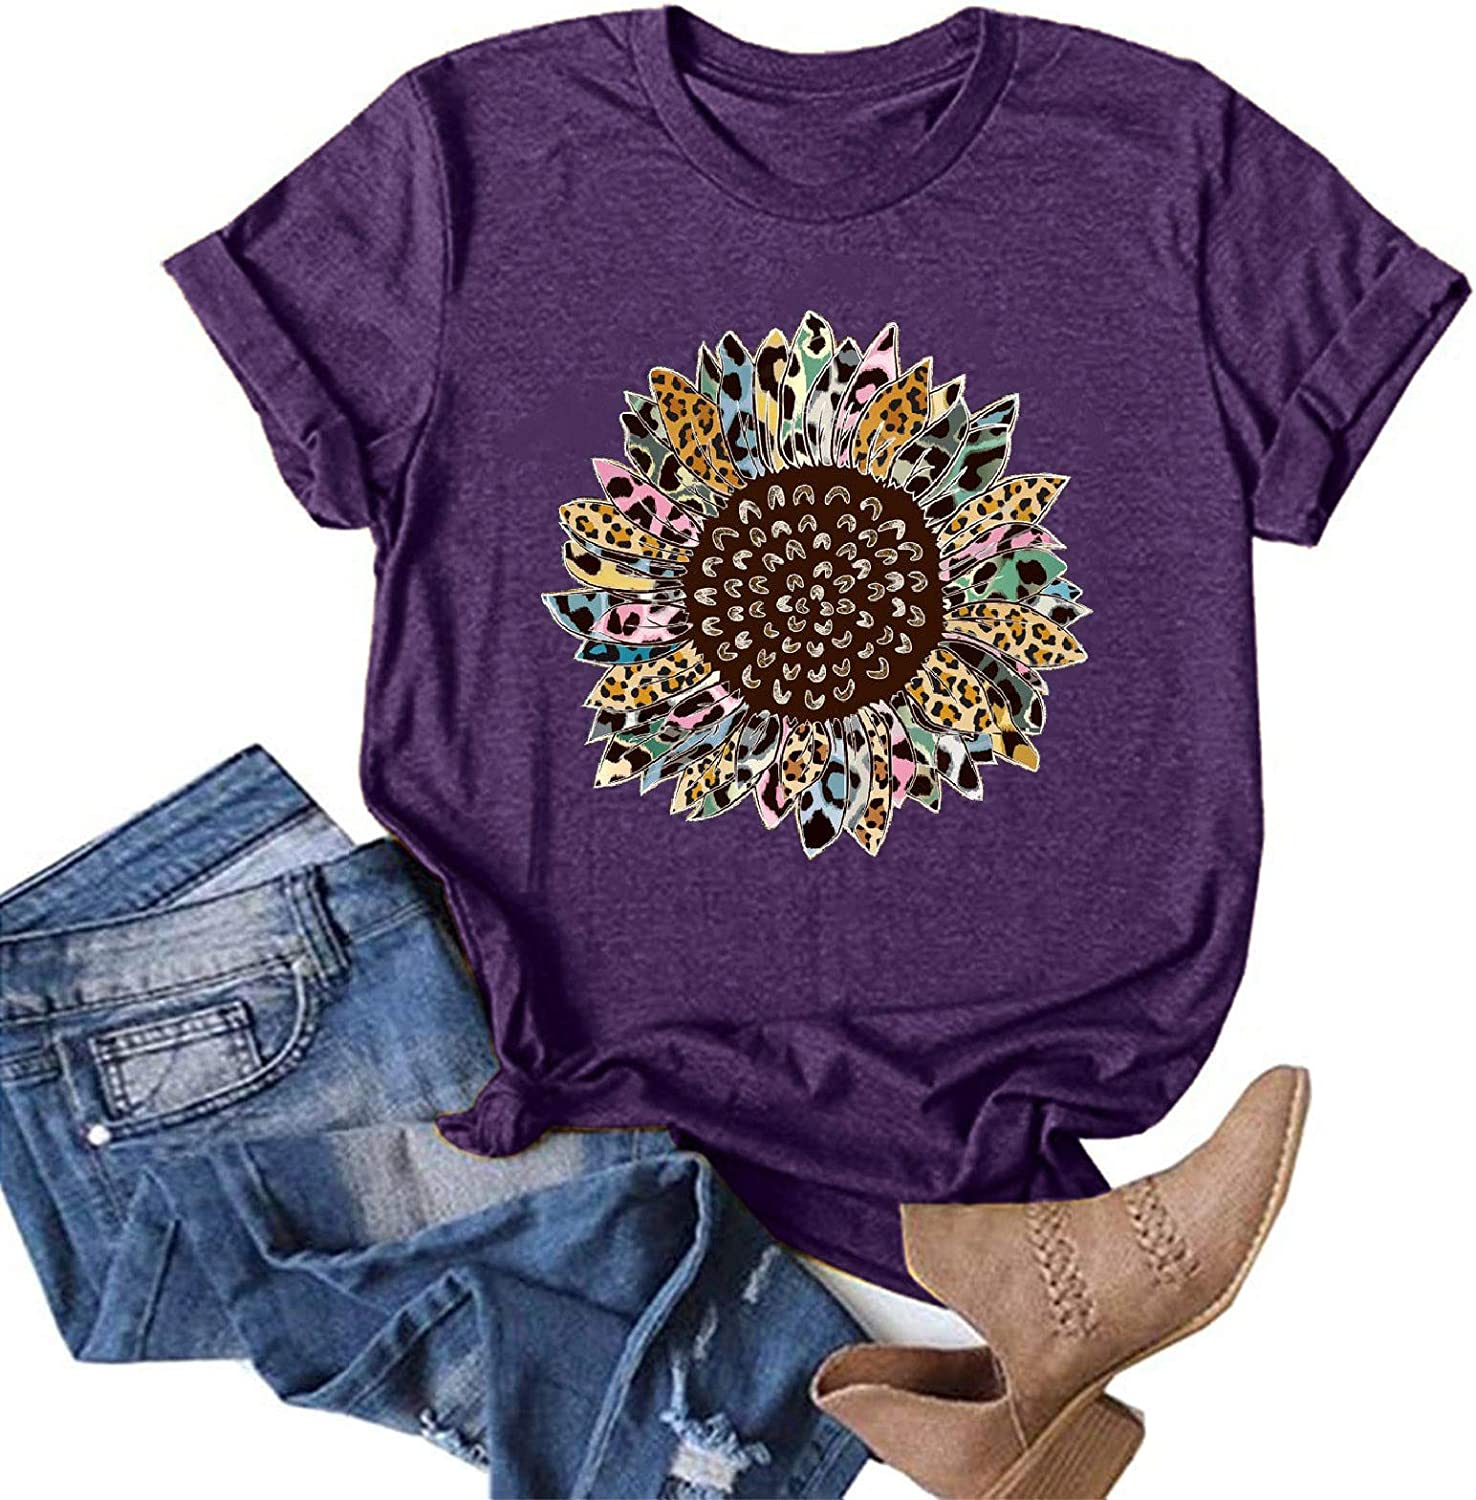 Aukbays Womens Plus Size Tops Shirts Summer Sunflower Printed Graphic Tees Short Sleeve T-Shirts Casual Blouse Tunic